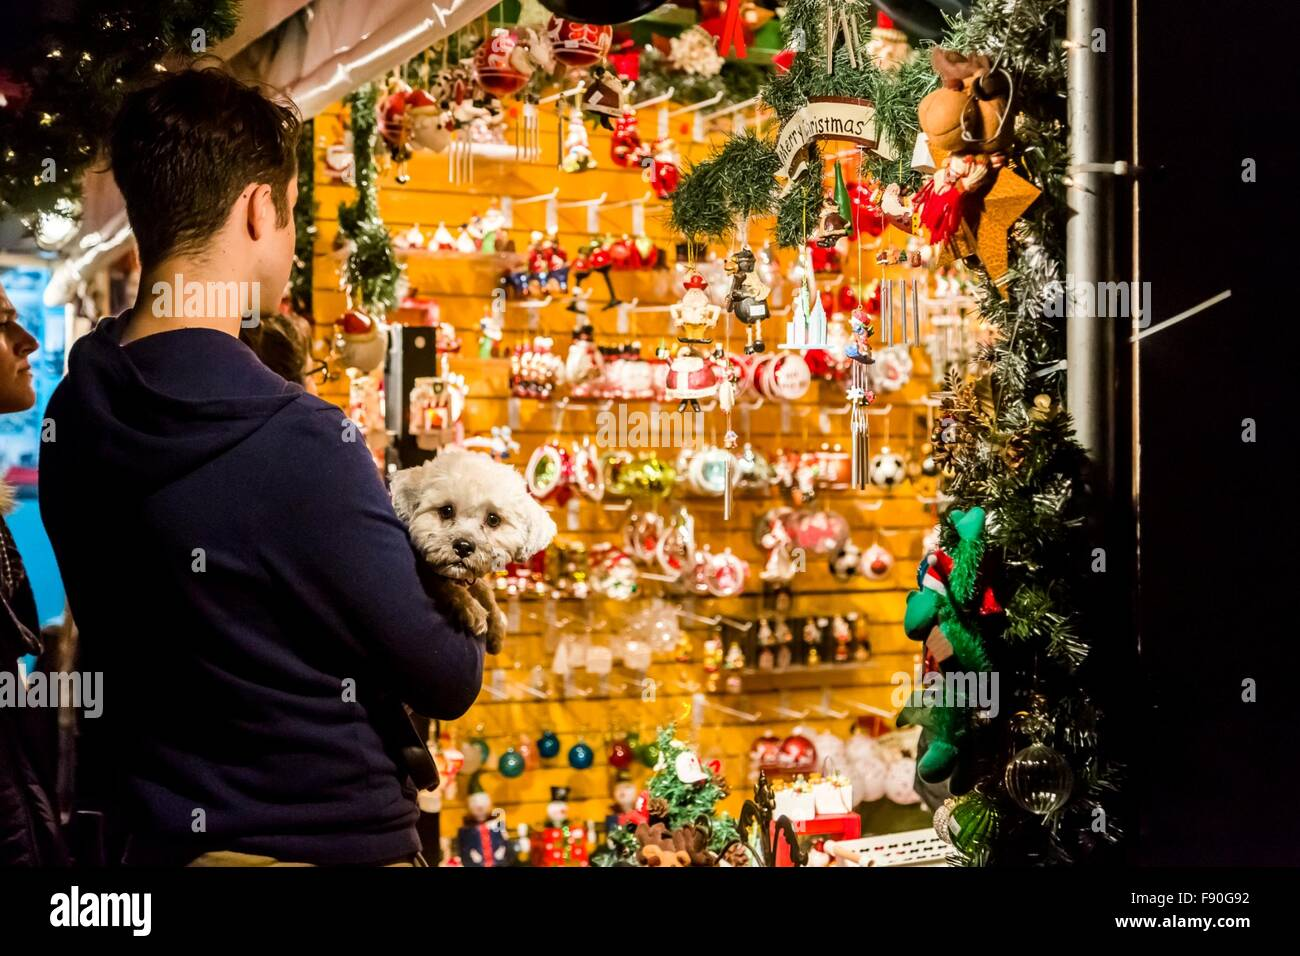 People shop at the Columbus Circle Holiday Market in New York, the United States on Dec. 11, 2015. The annual Columbus Stock Photo